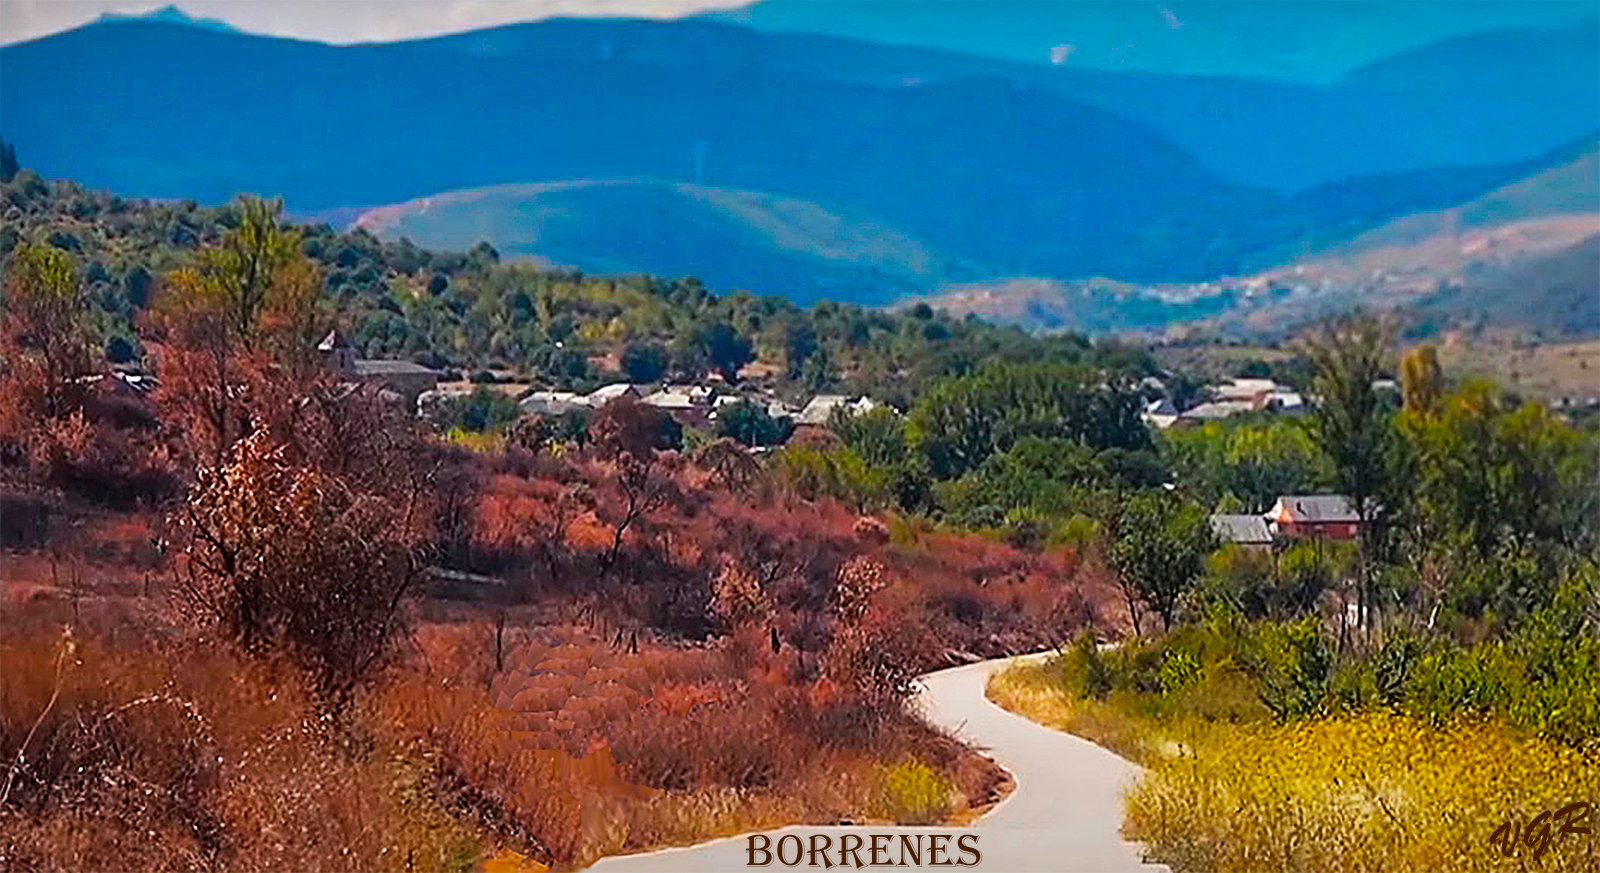 Borrenes-Vista General-WEB.jpg